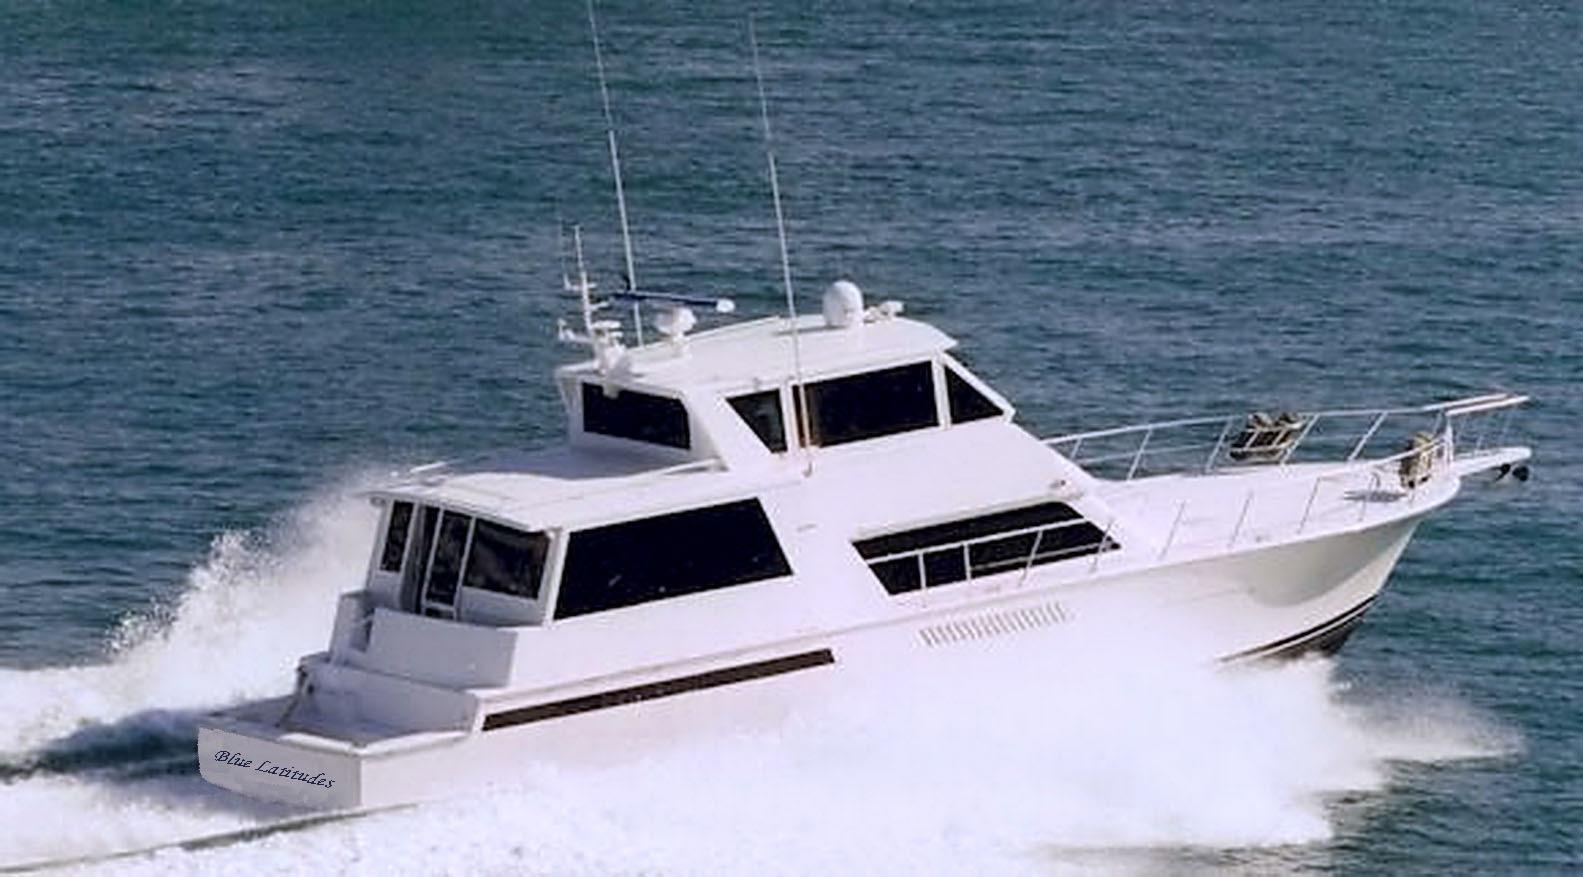 60 viking yachts 2000 blue latitudes for sale in stuart